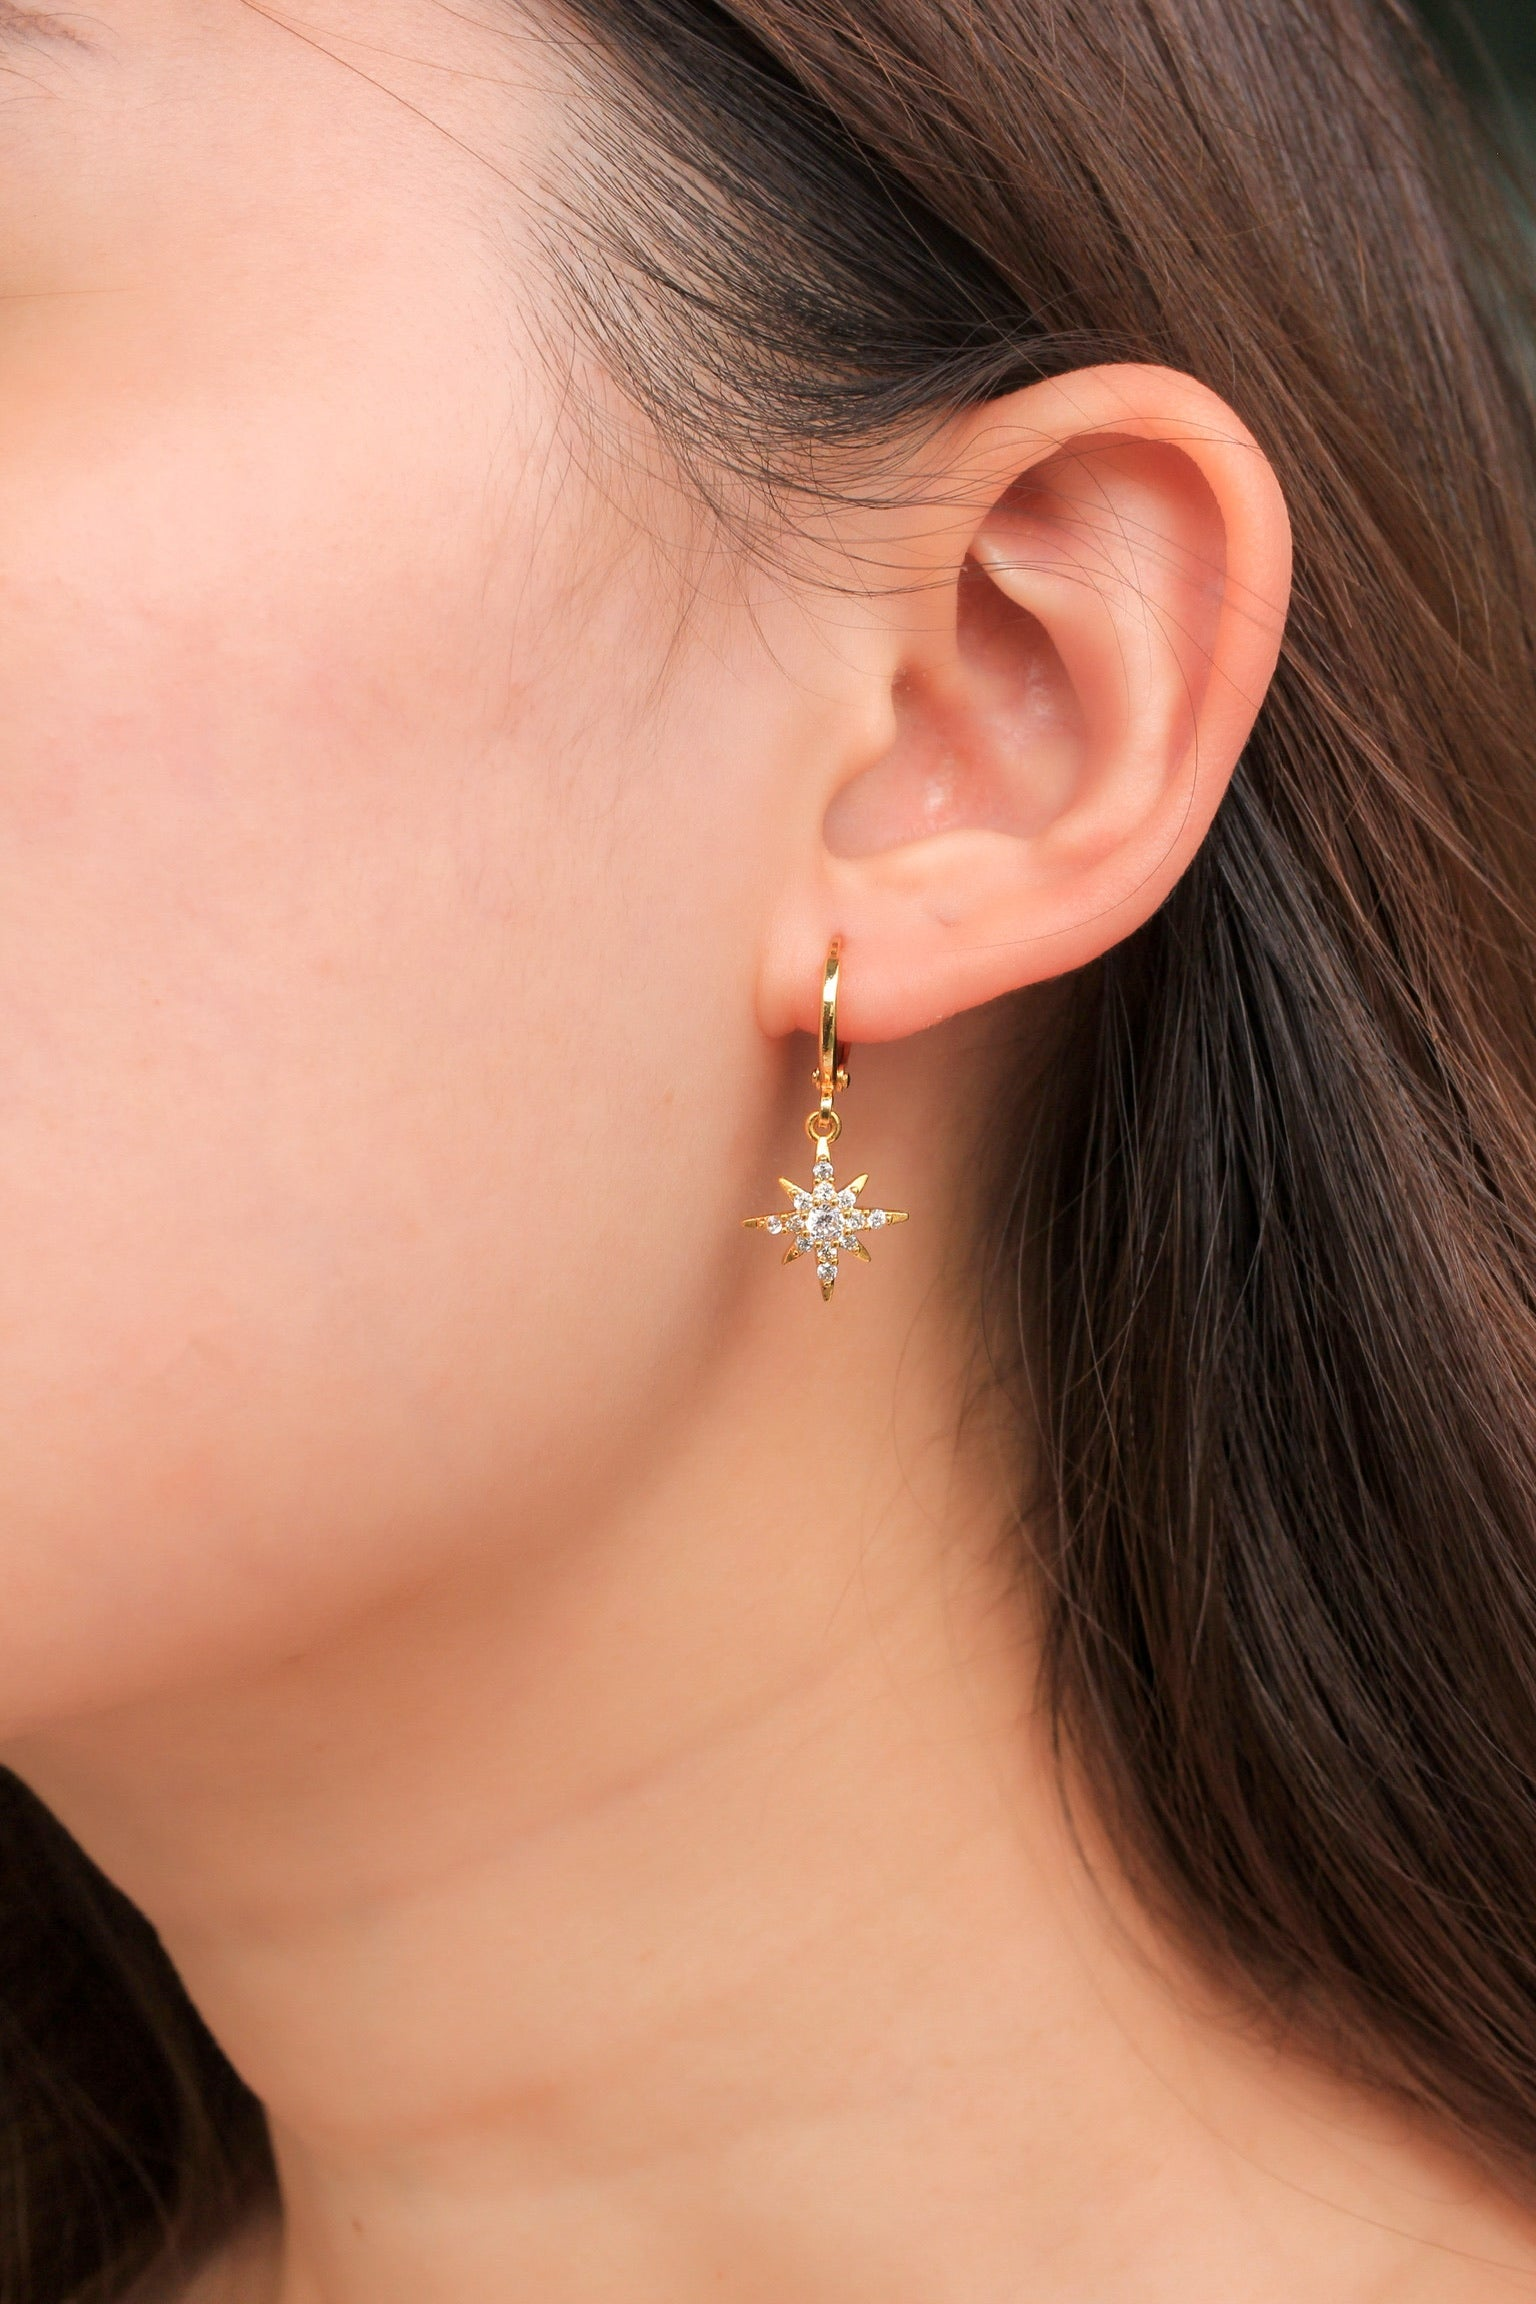 Personalised Earrings - Starry Sky